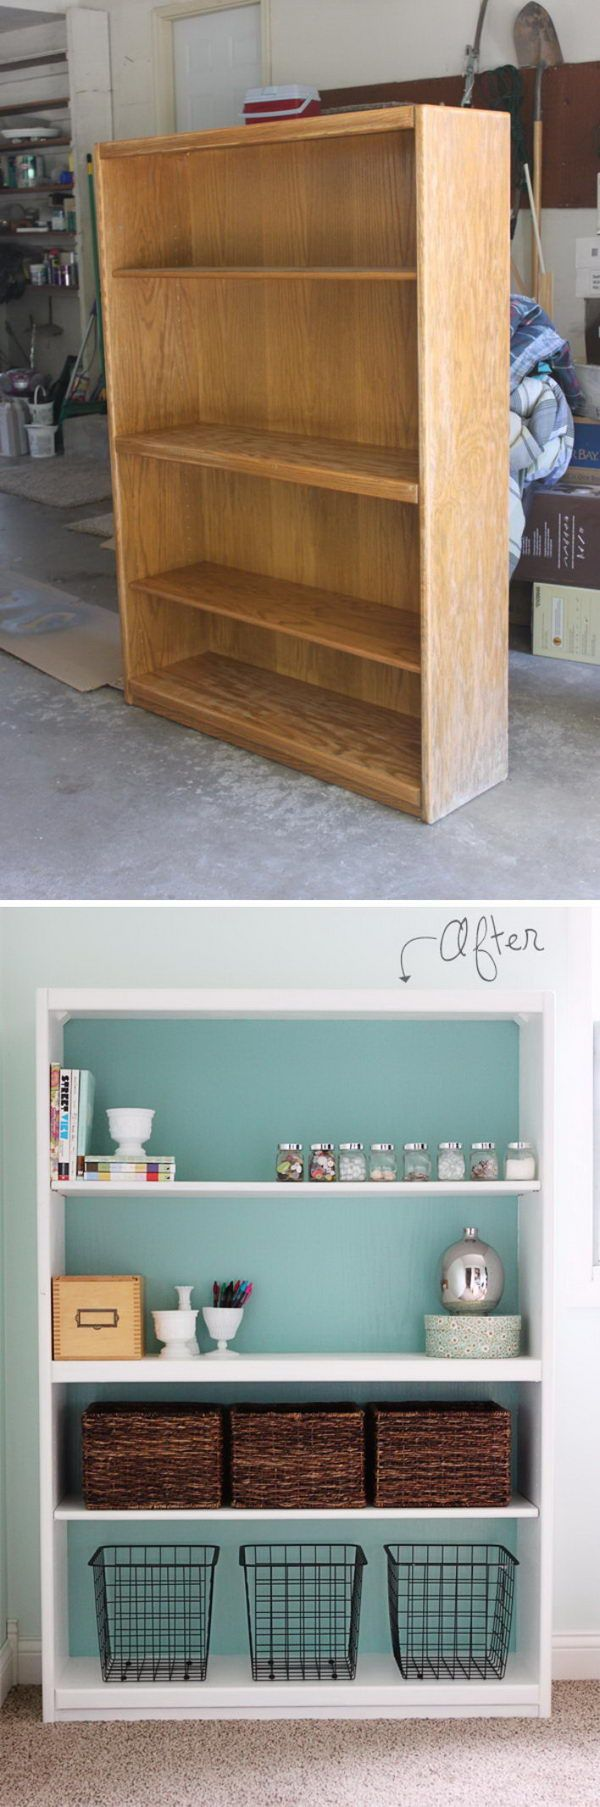 Bookcase Makeover With Before and After. | From Old to New ...